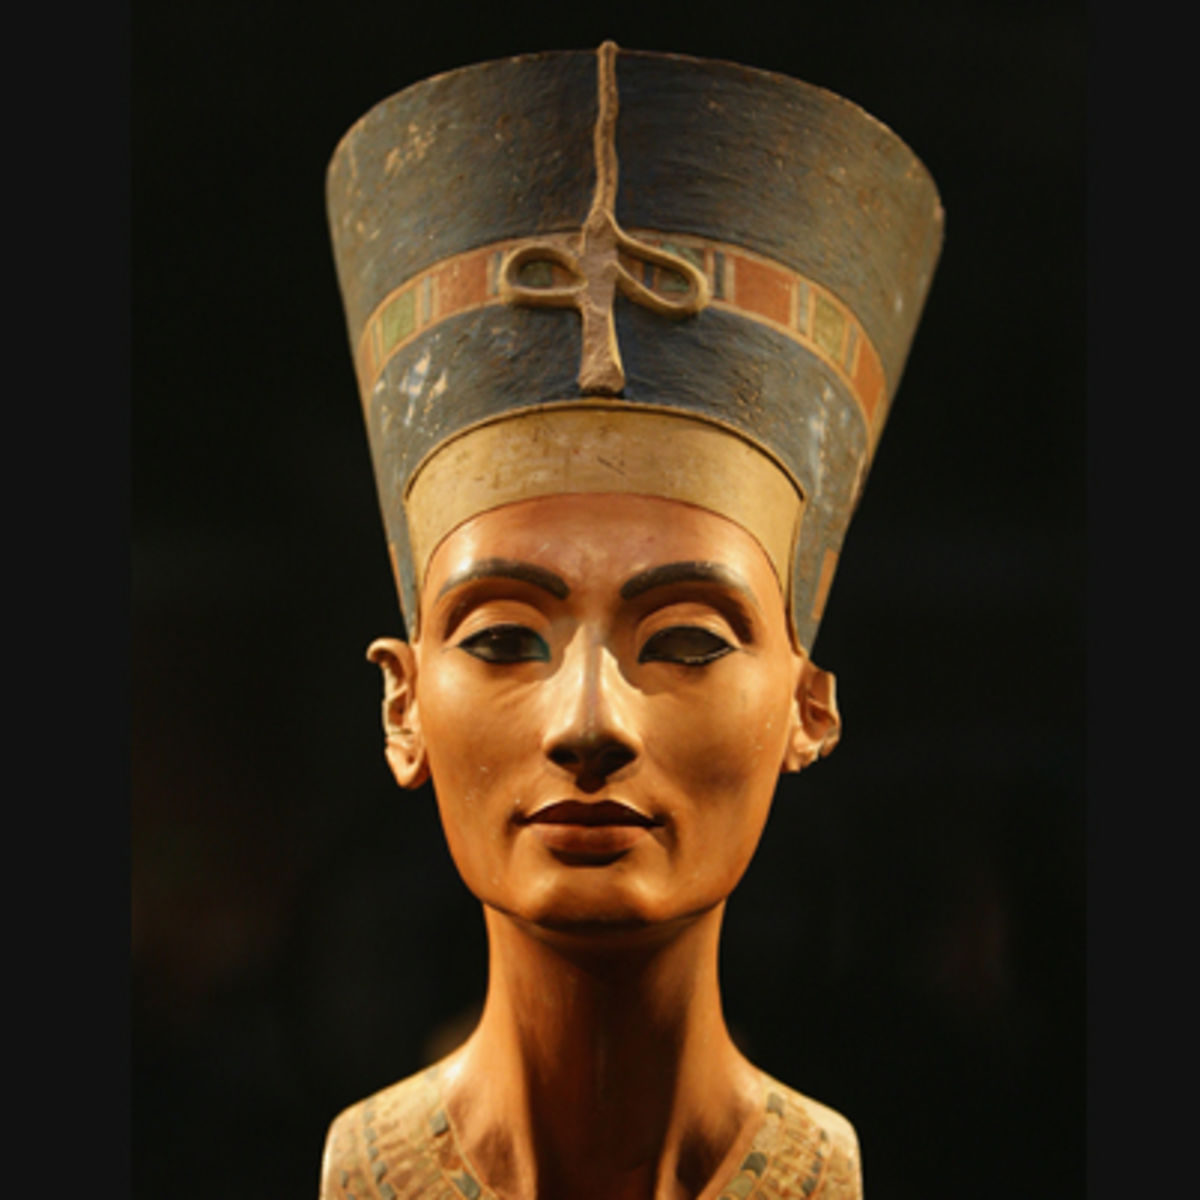 African Queens: The famous portrait of Nefertiti